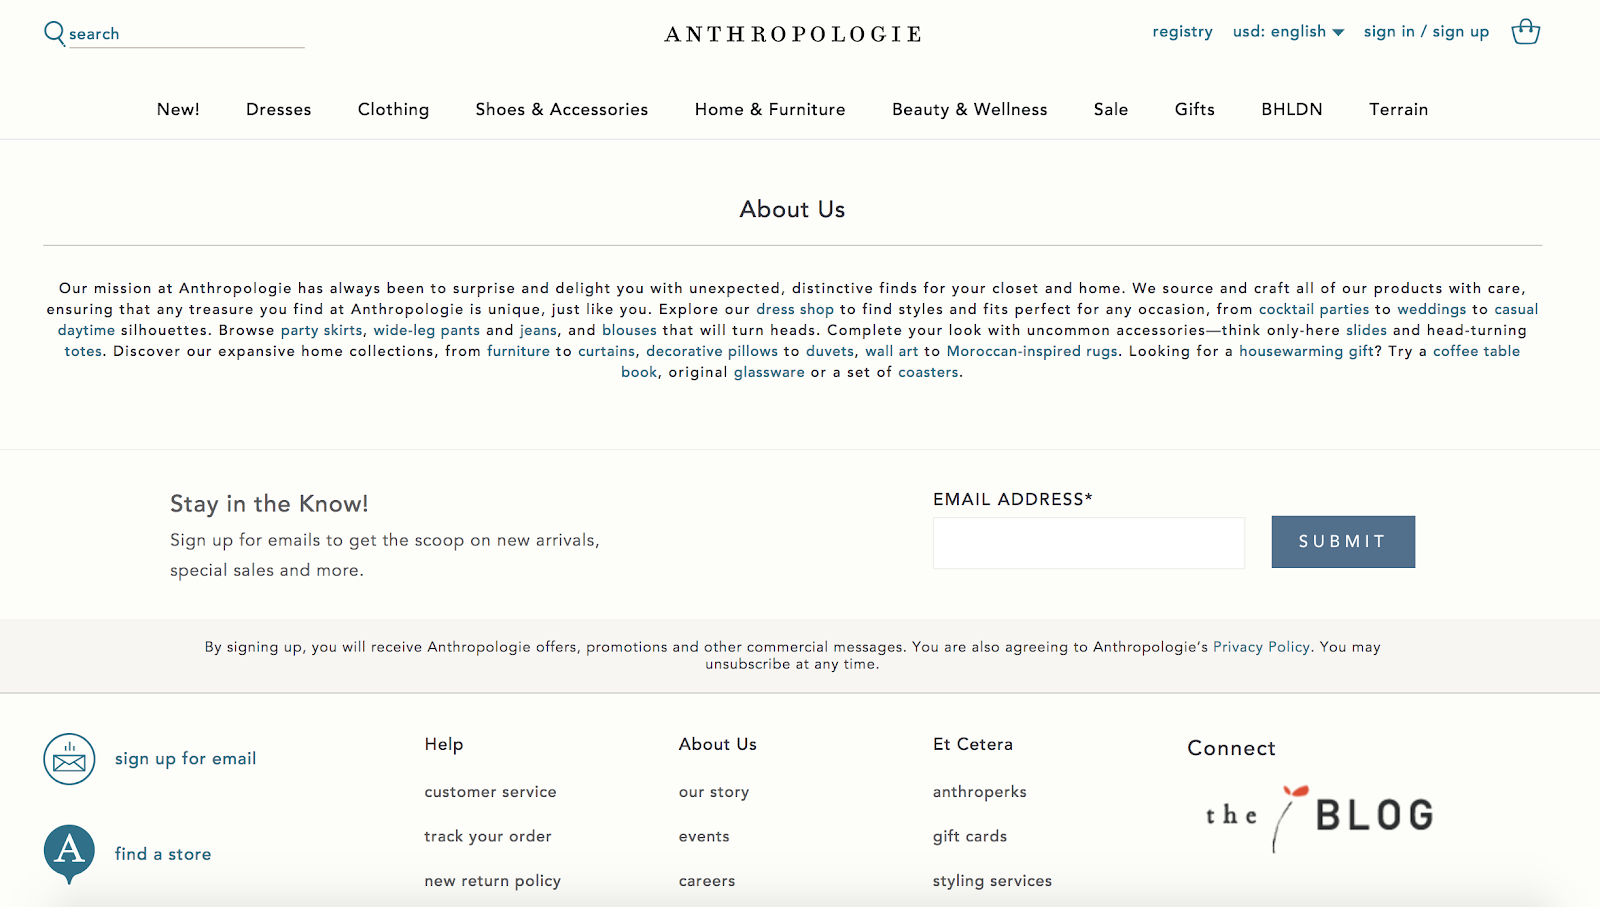 anthropologie homepage with signup form at the bottom of the page above the footer